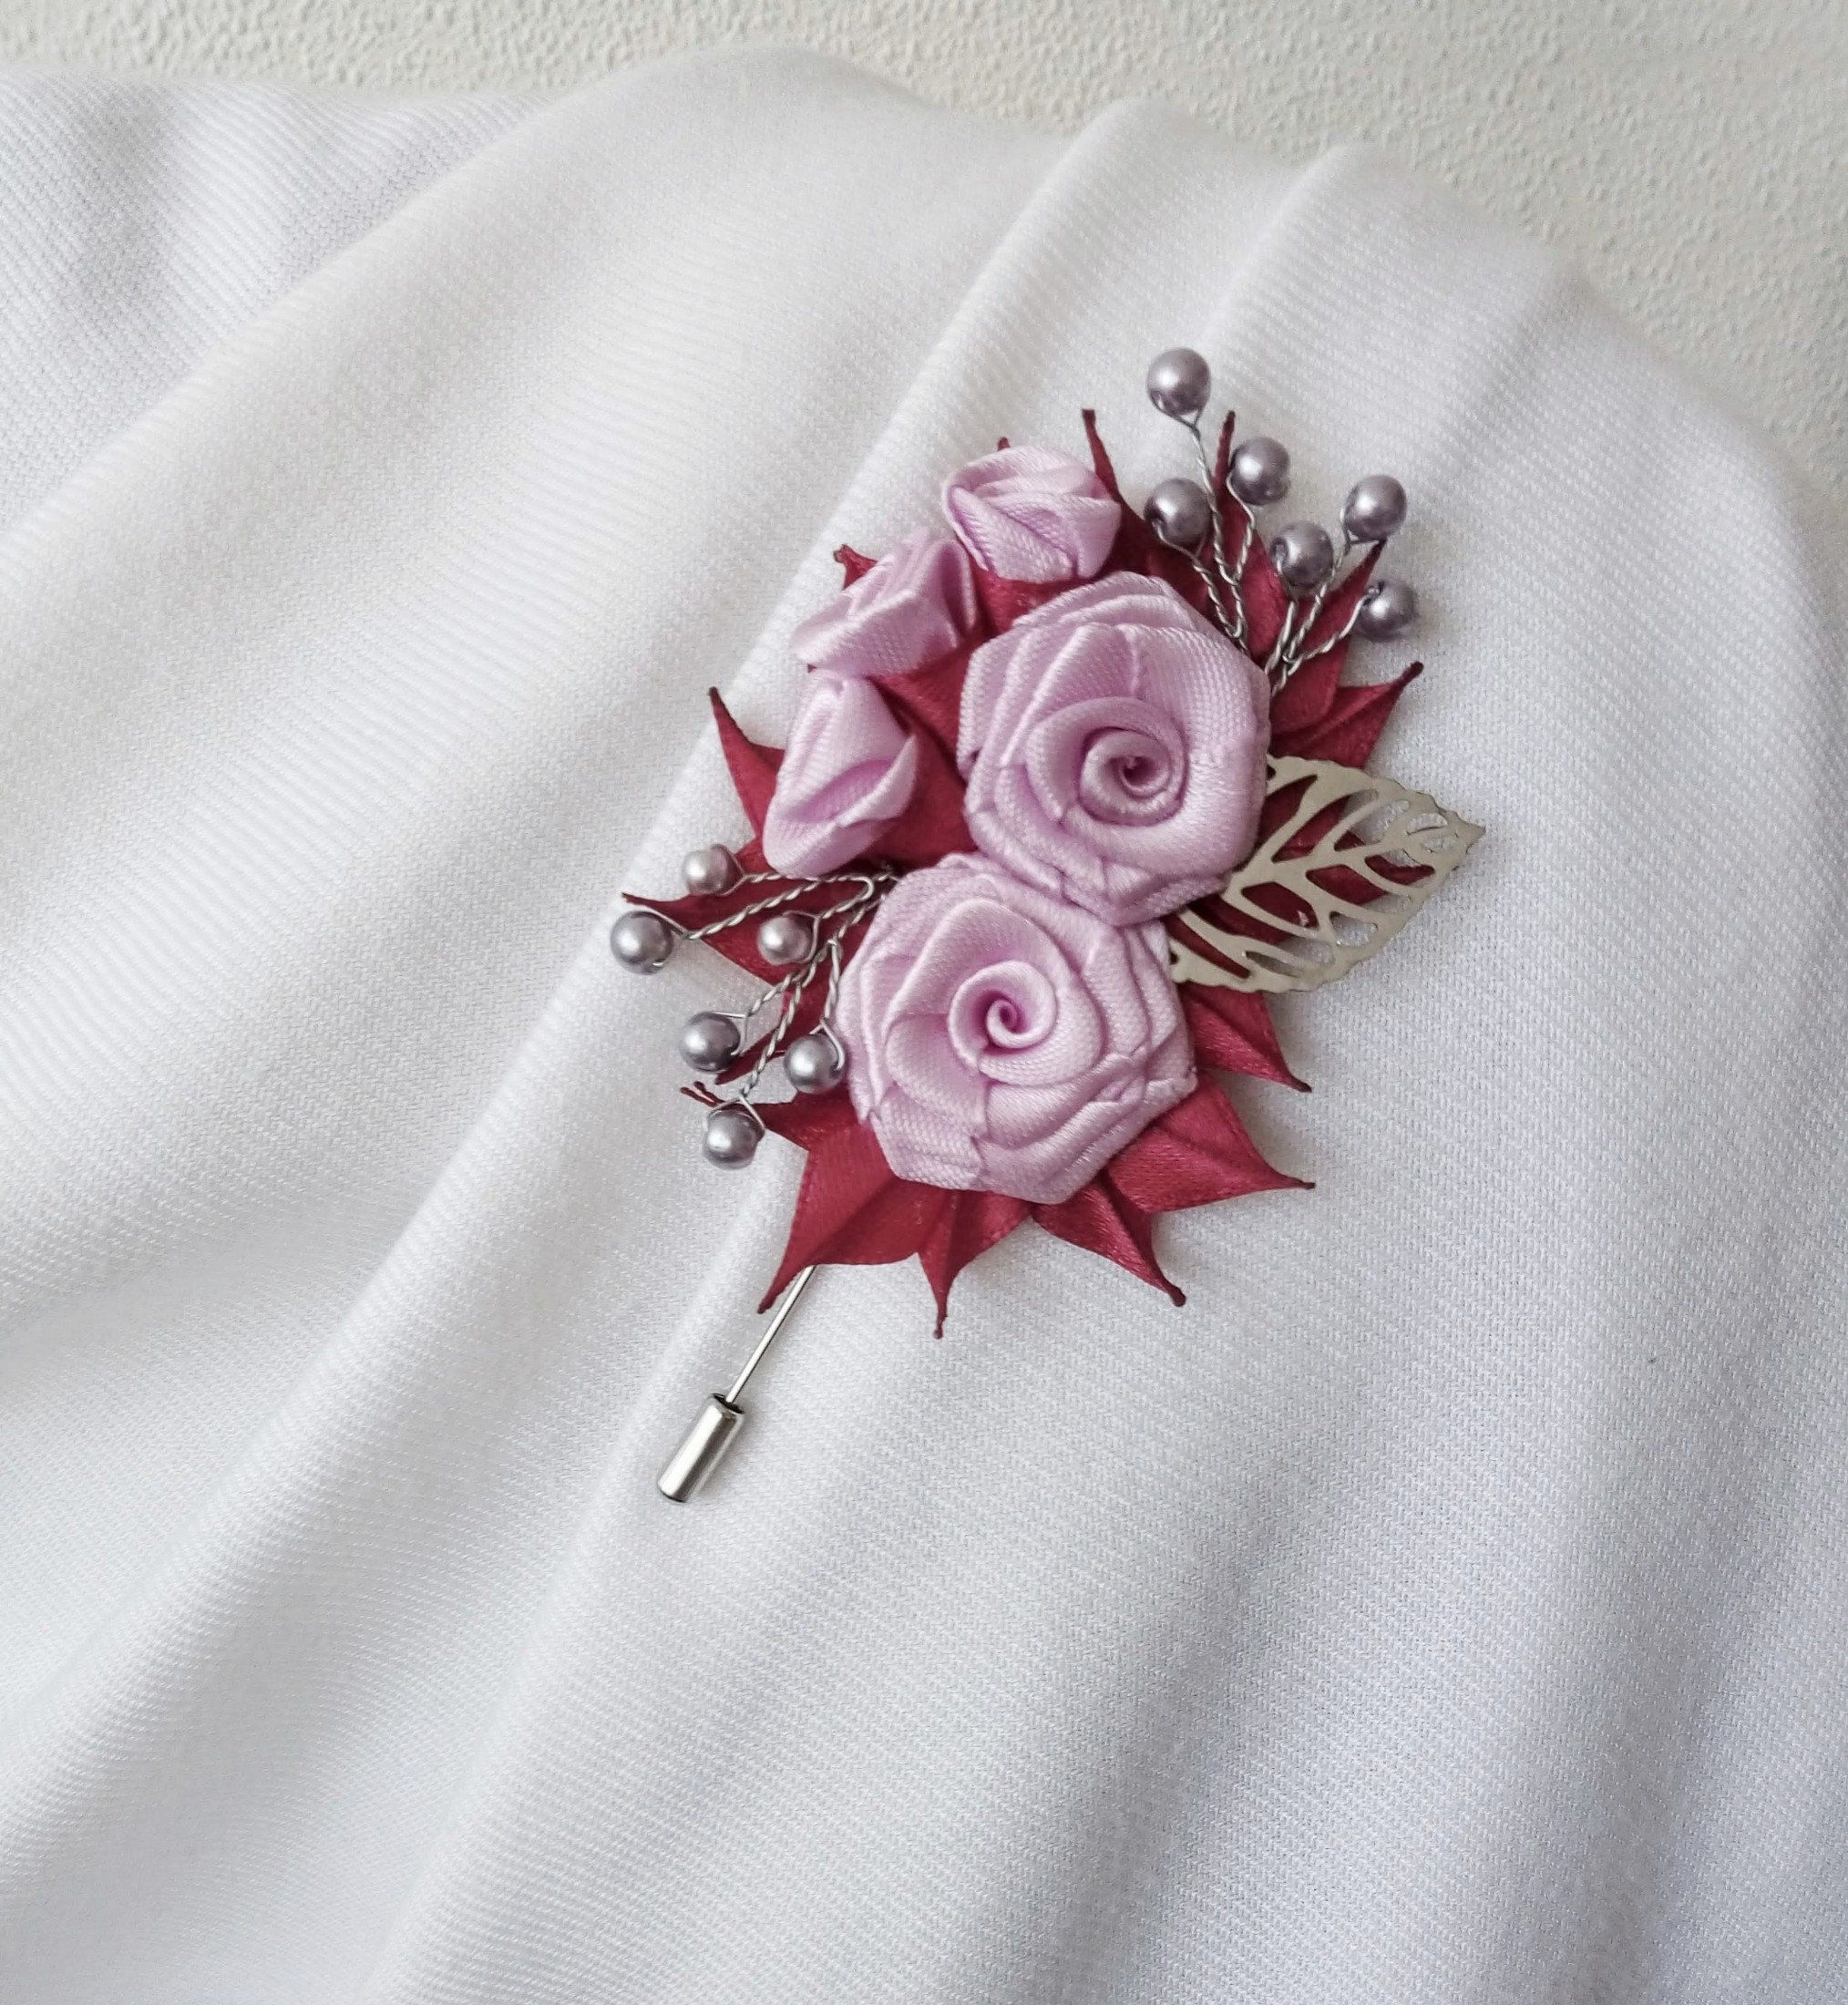 Pink Lilac Fabric Flowers Pin Brooch Pin Of Pink Lilac Color With Pearl Beads Fabric Flower Pin Brooch Flower Pin For Dress